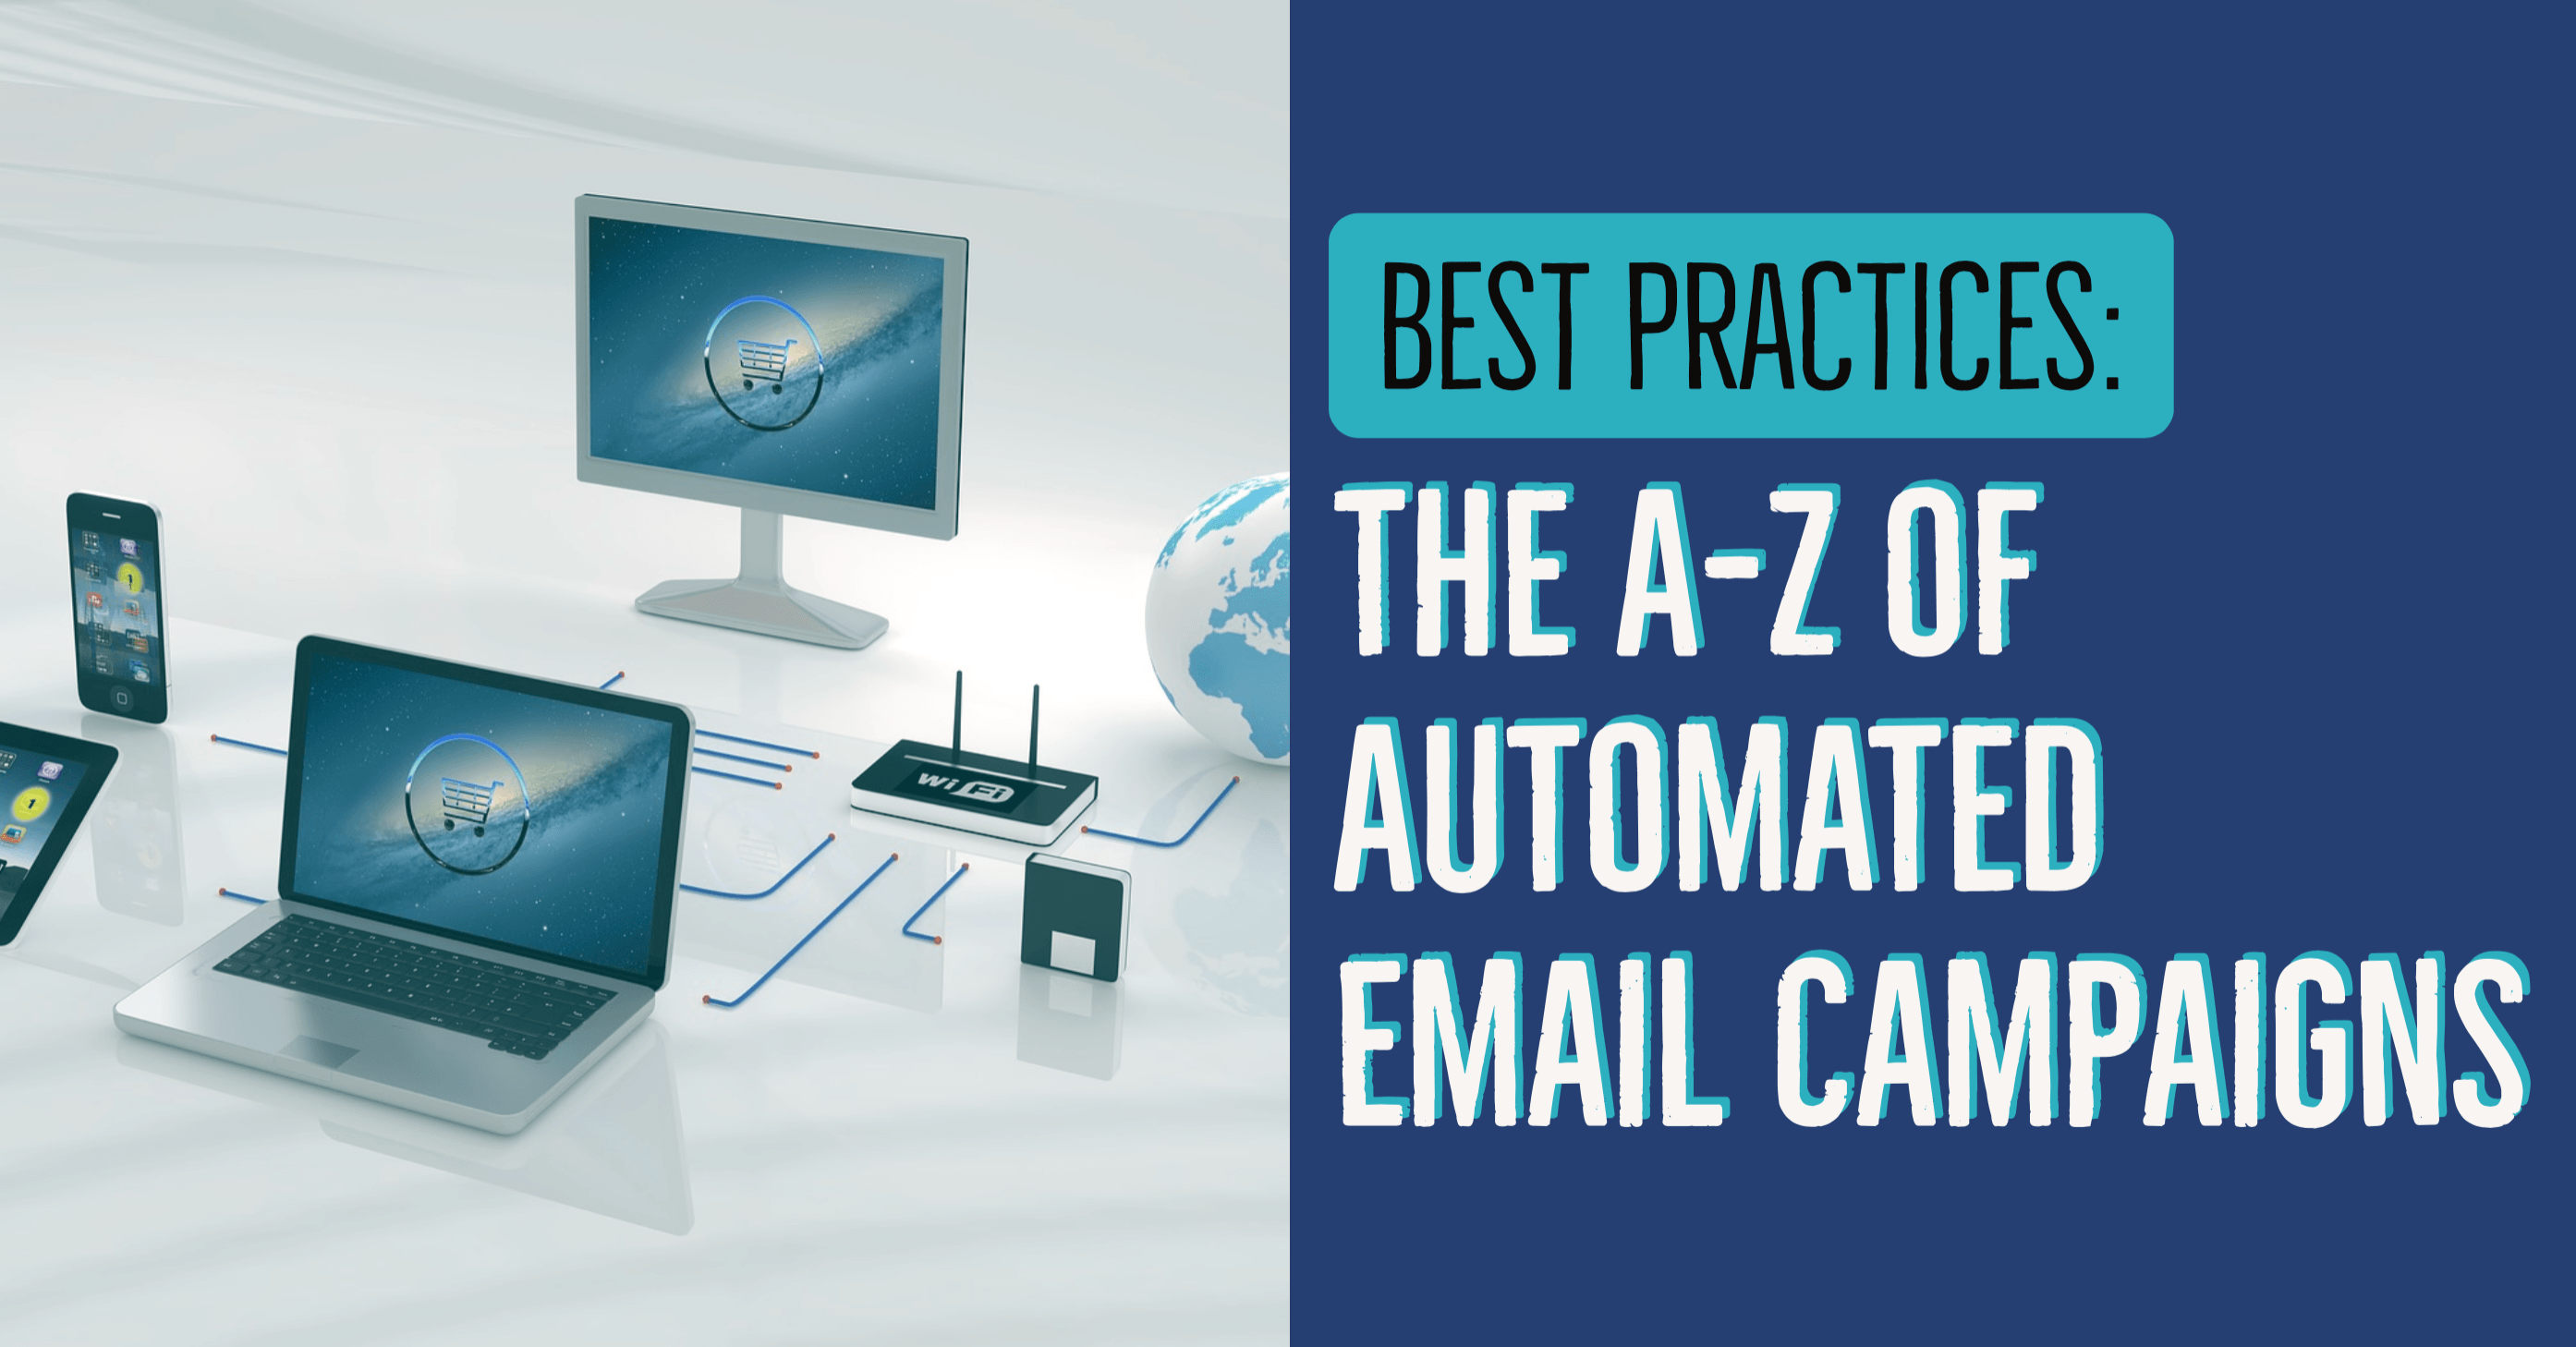 The A-Z of Automated Email Campaigns